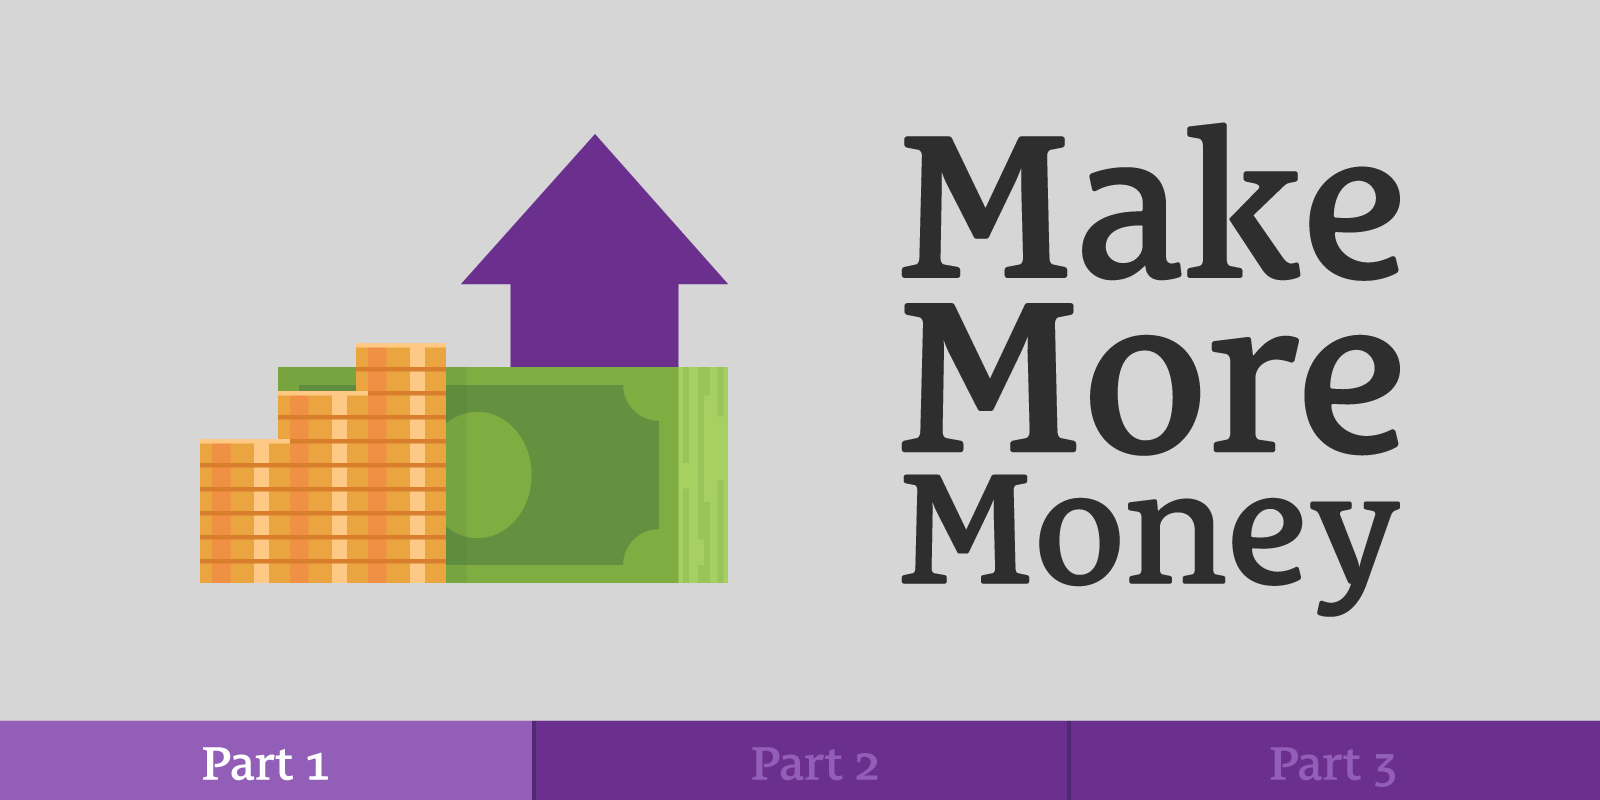 Value-Based Pricing (Part 1 of 3): Make More Money While Doing Your Best Work